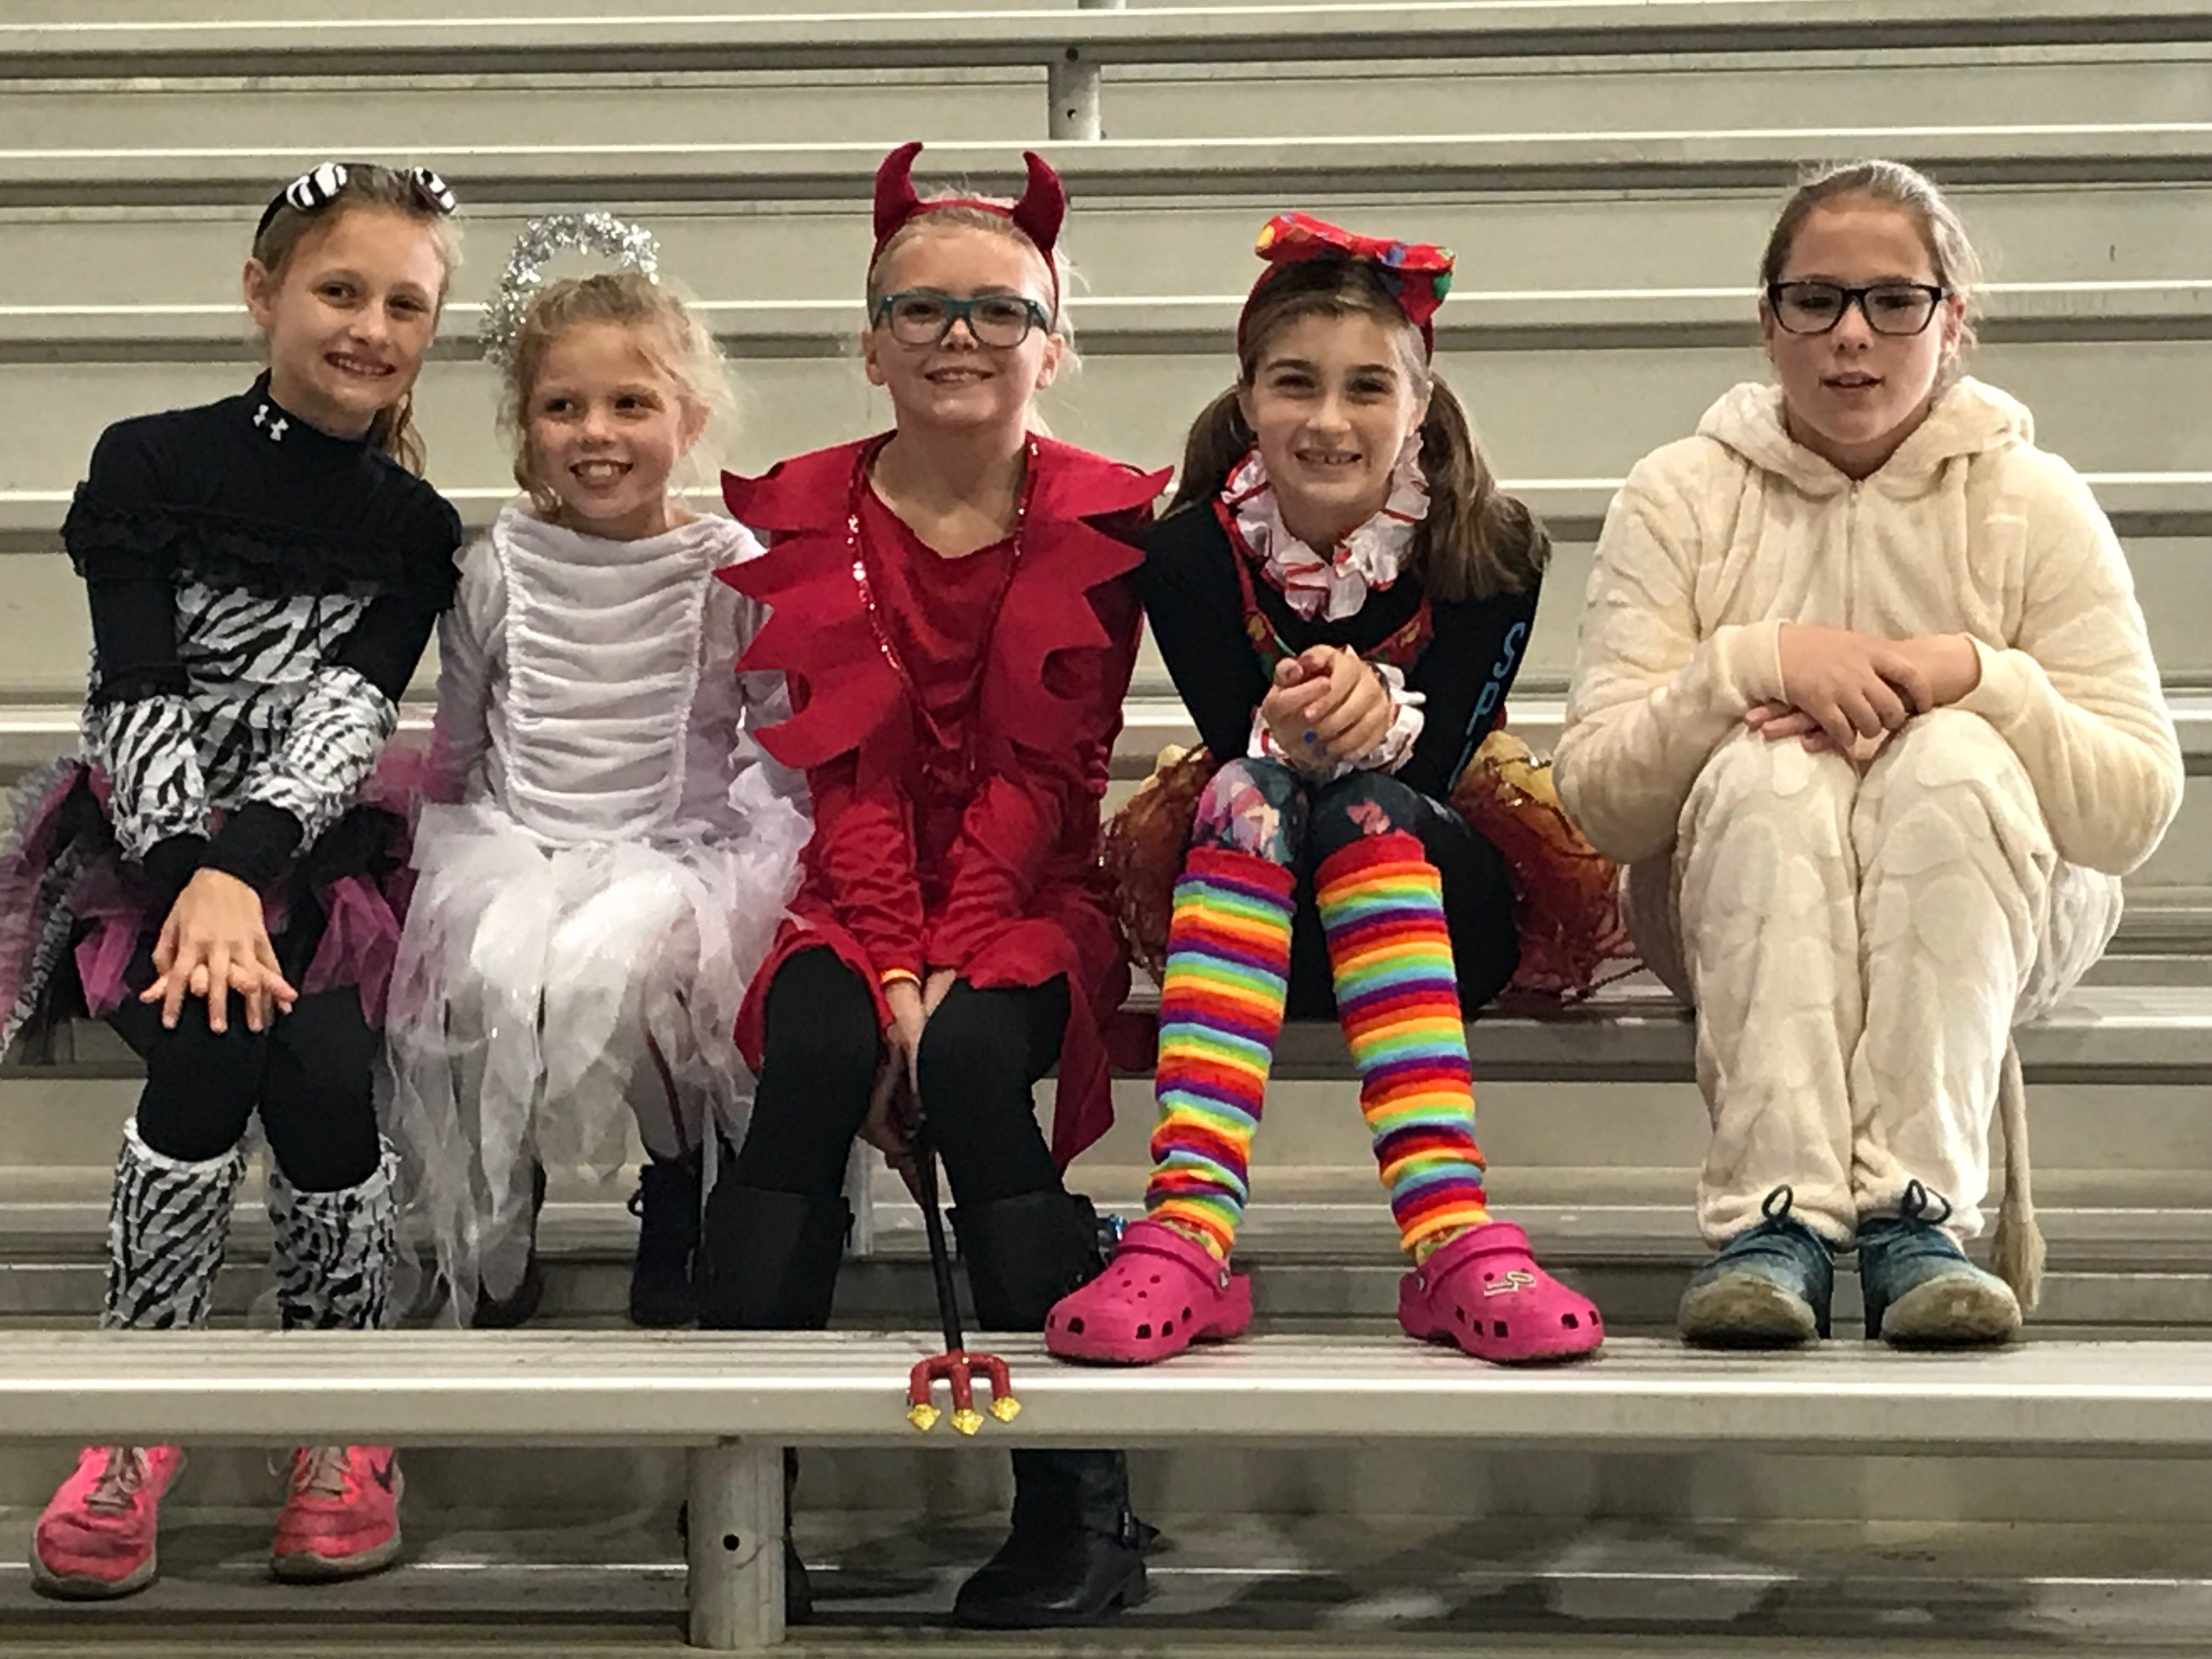 Older kids wait for their chance to compete in the costume contest Saturday afternoon at the first Great Delaware Pumpkin Carve in Harrington.